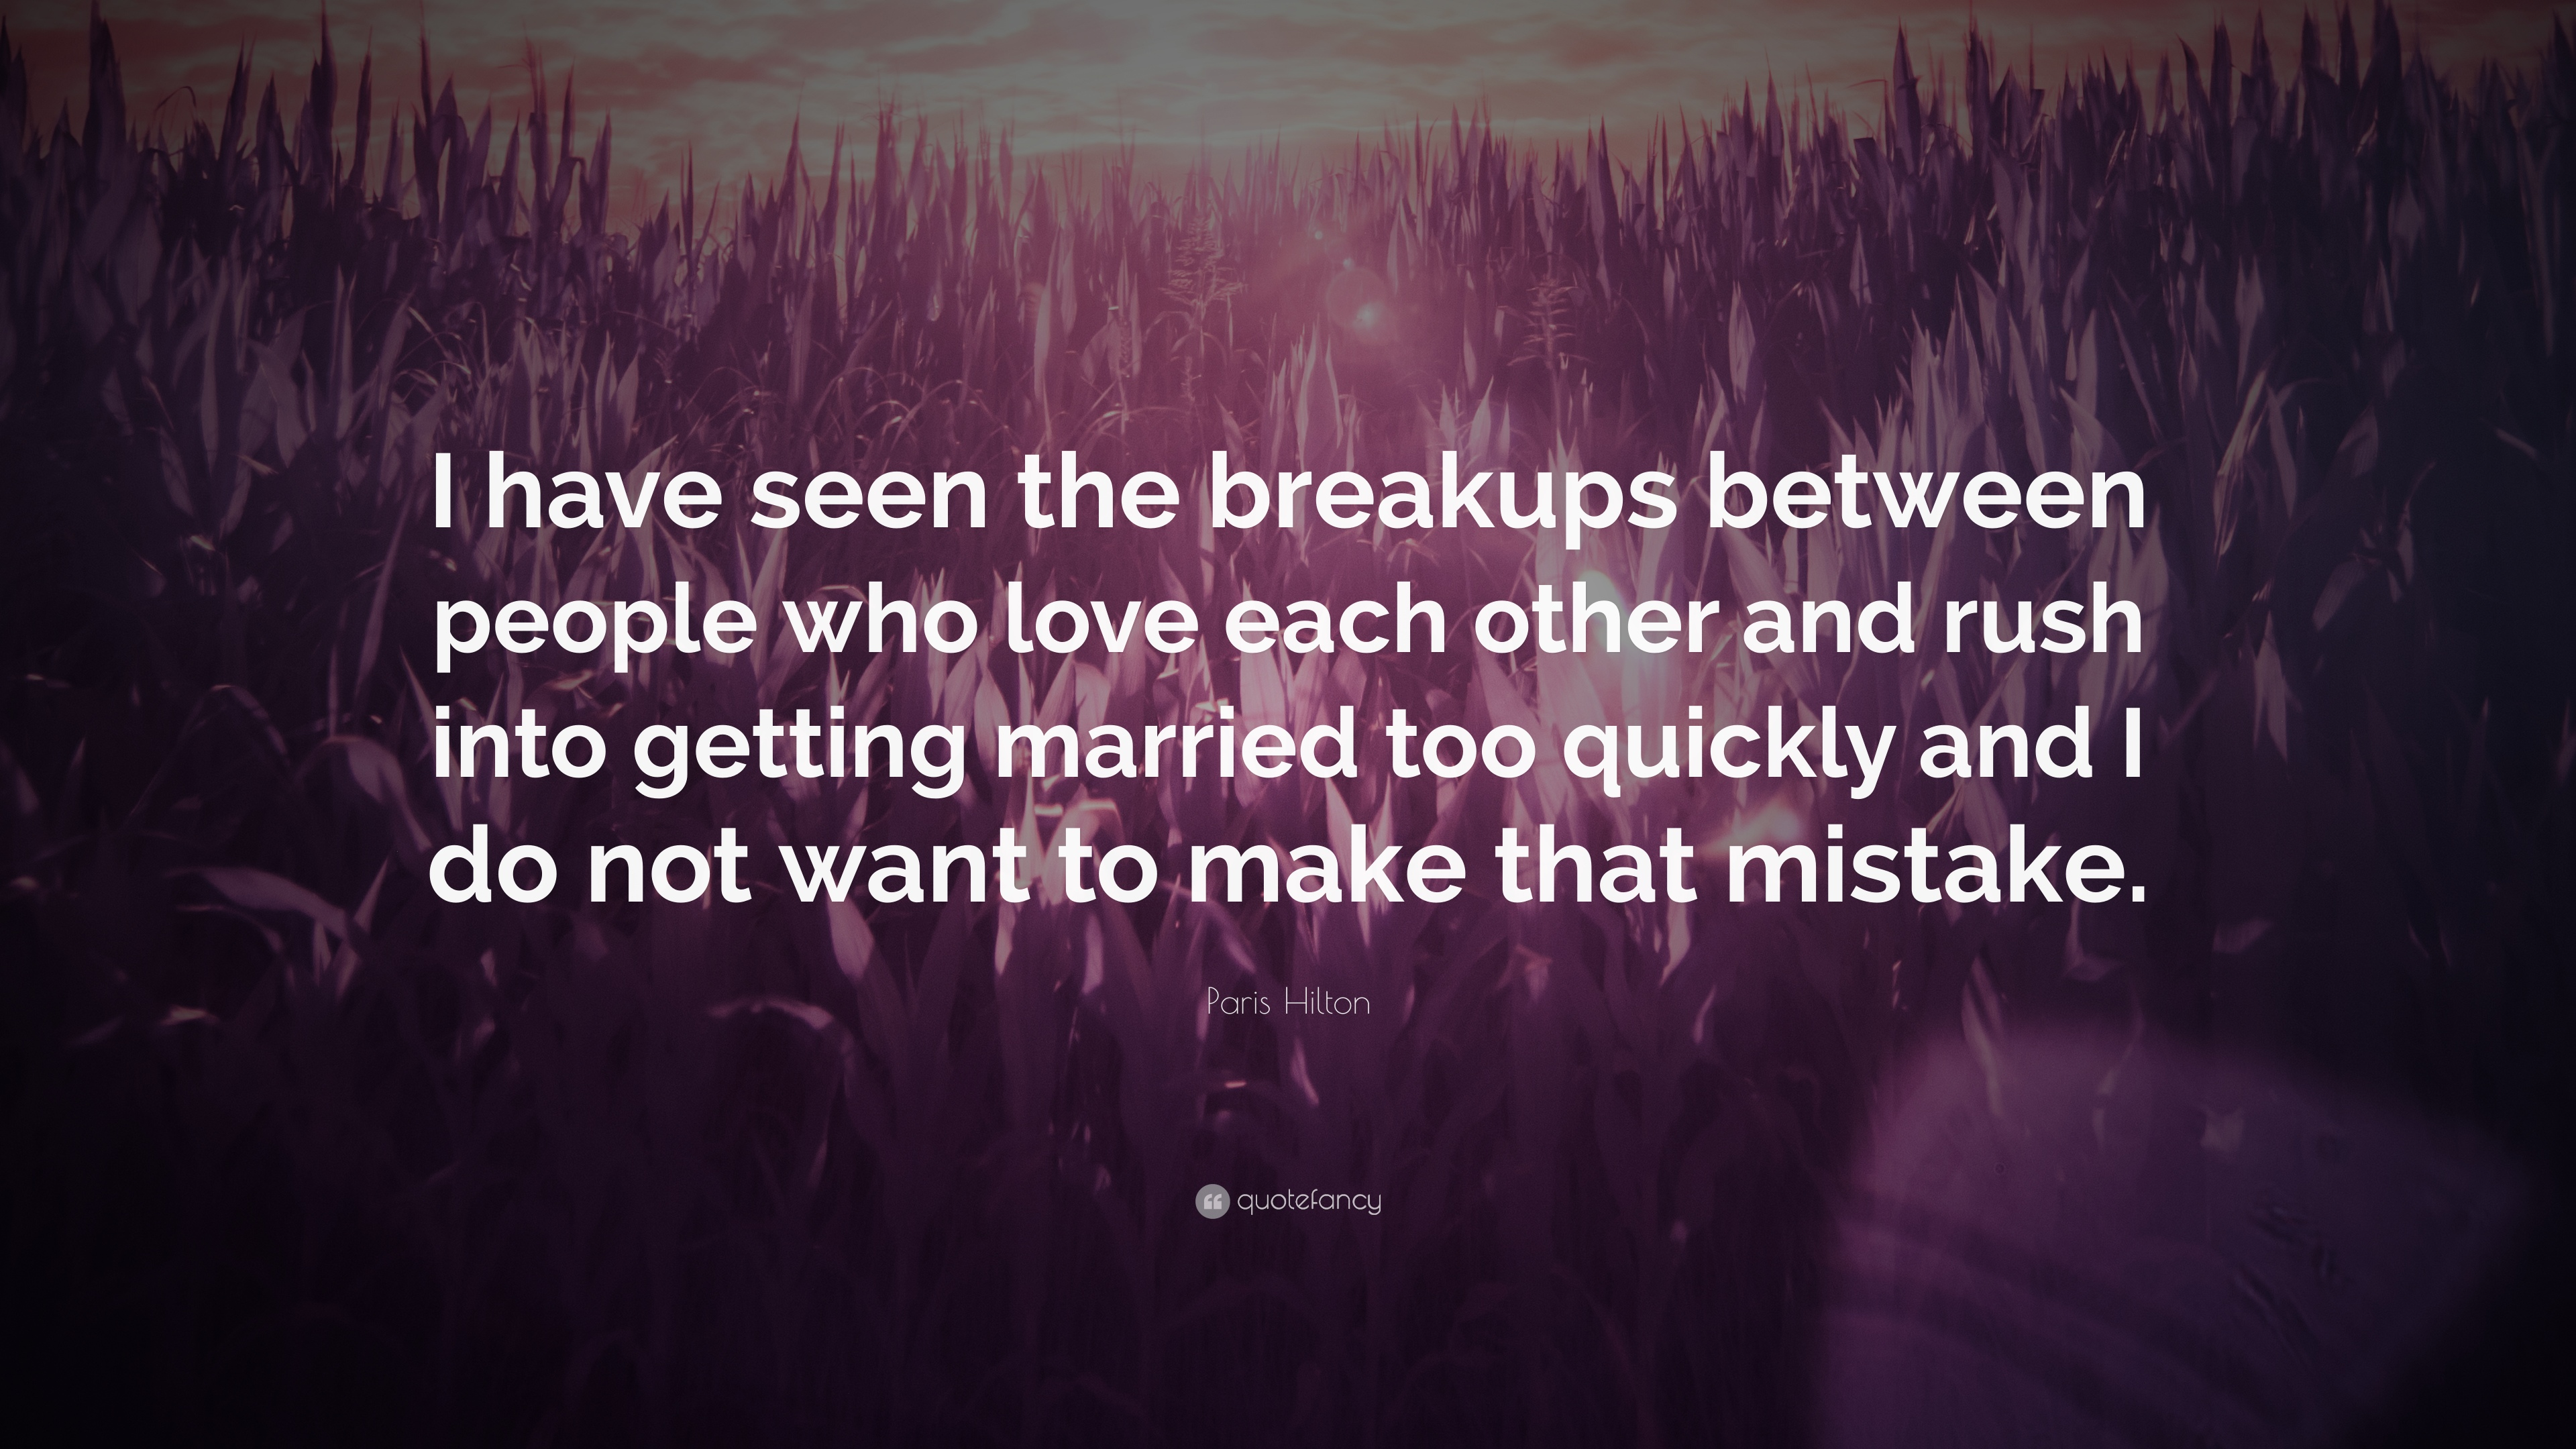 Paris Hilton Quote I Have Seen The Breakups Between People Who Love Each Other And Rush Into Getting Married Too Quickly And I Do Not Want 7 Wallpapers Quotefancy